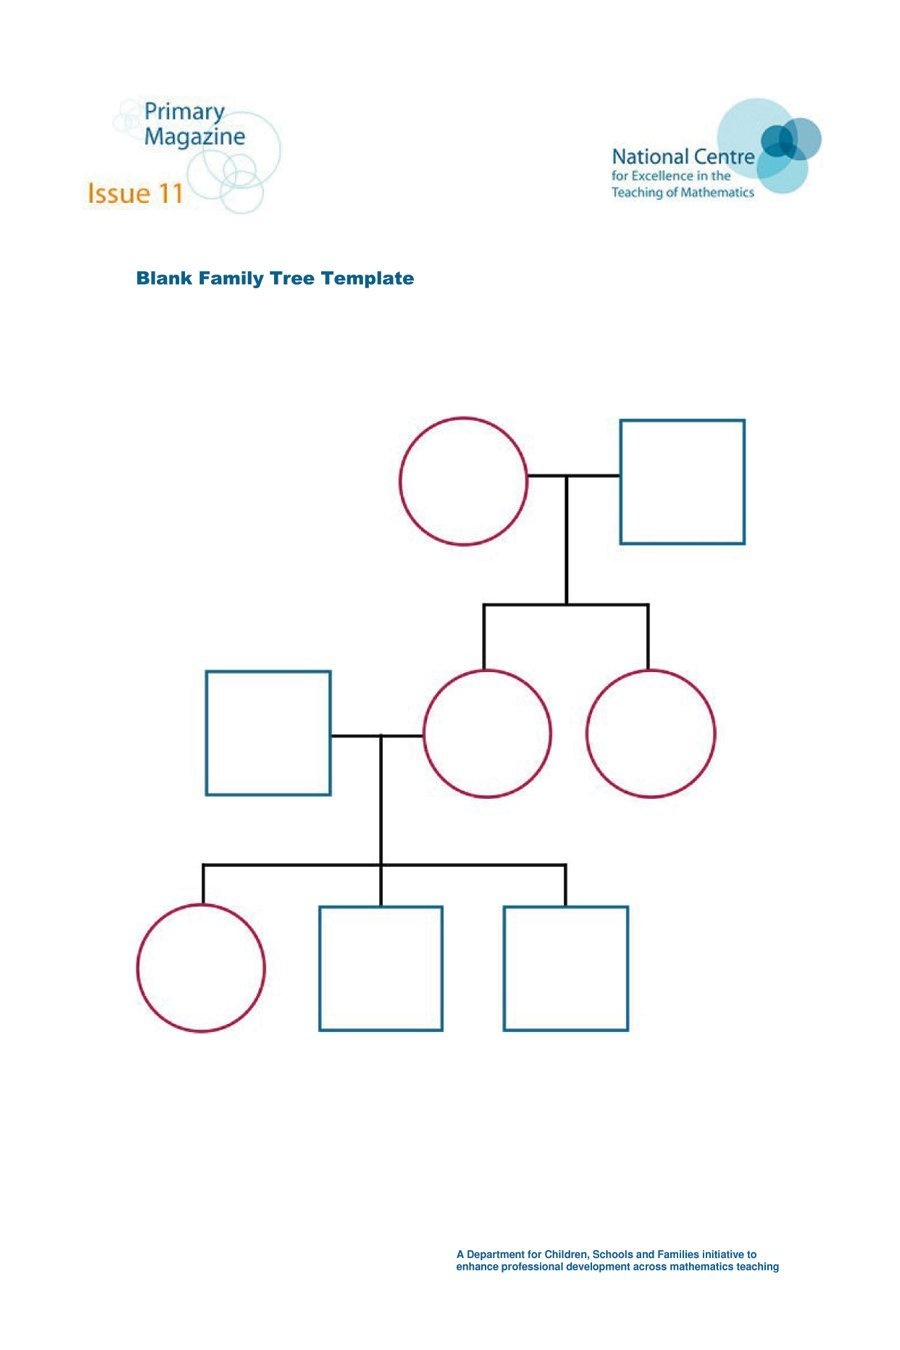 50+ Free Family Tree Templates (Word, Excel, Pdf) ᐅ Template Lab - Family Tree Maker Free Printable